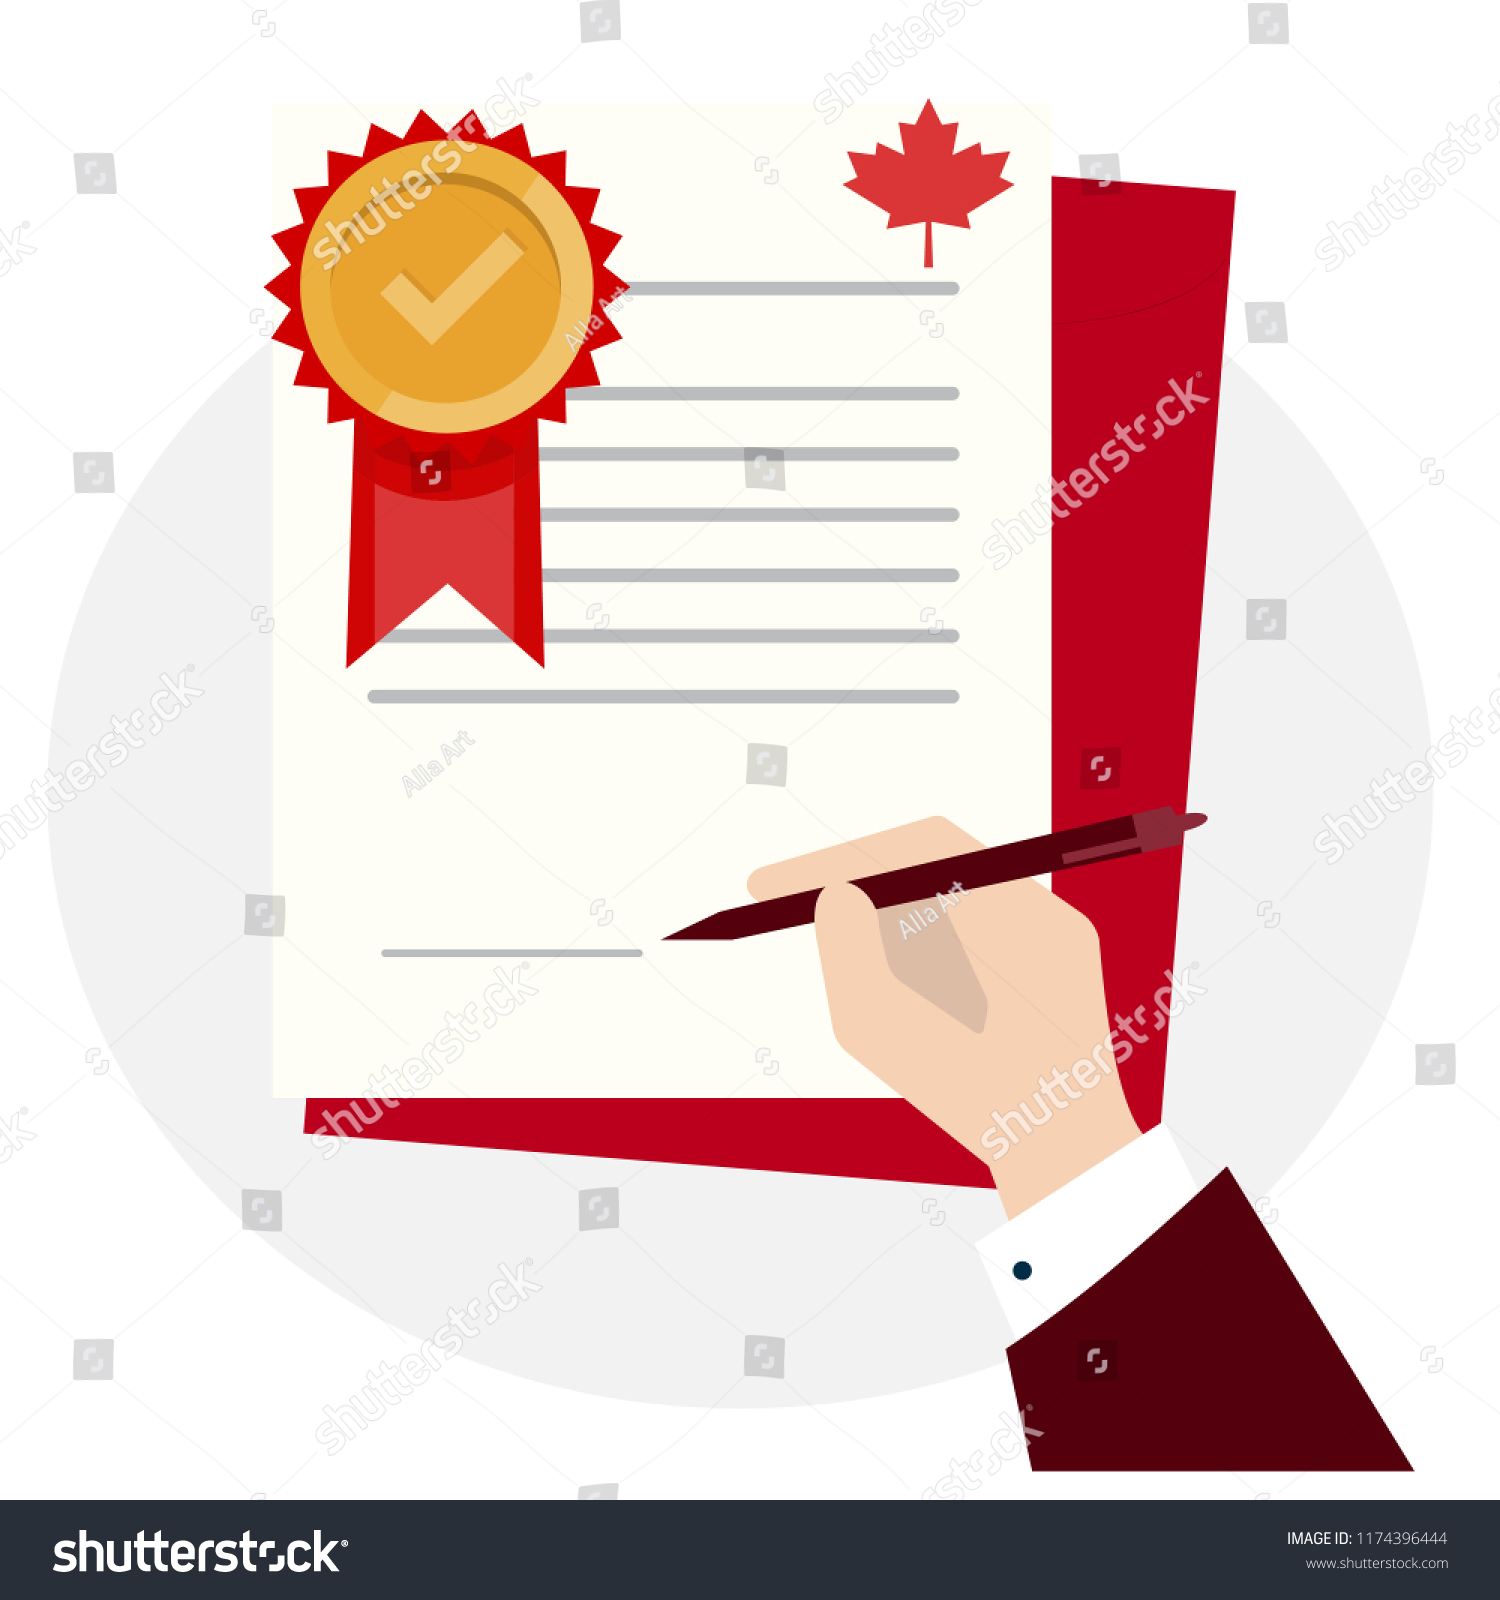 Canadian Standard Quality Control Certification Assurance Stock